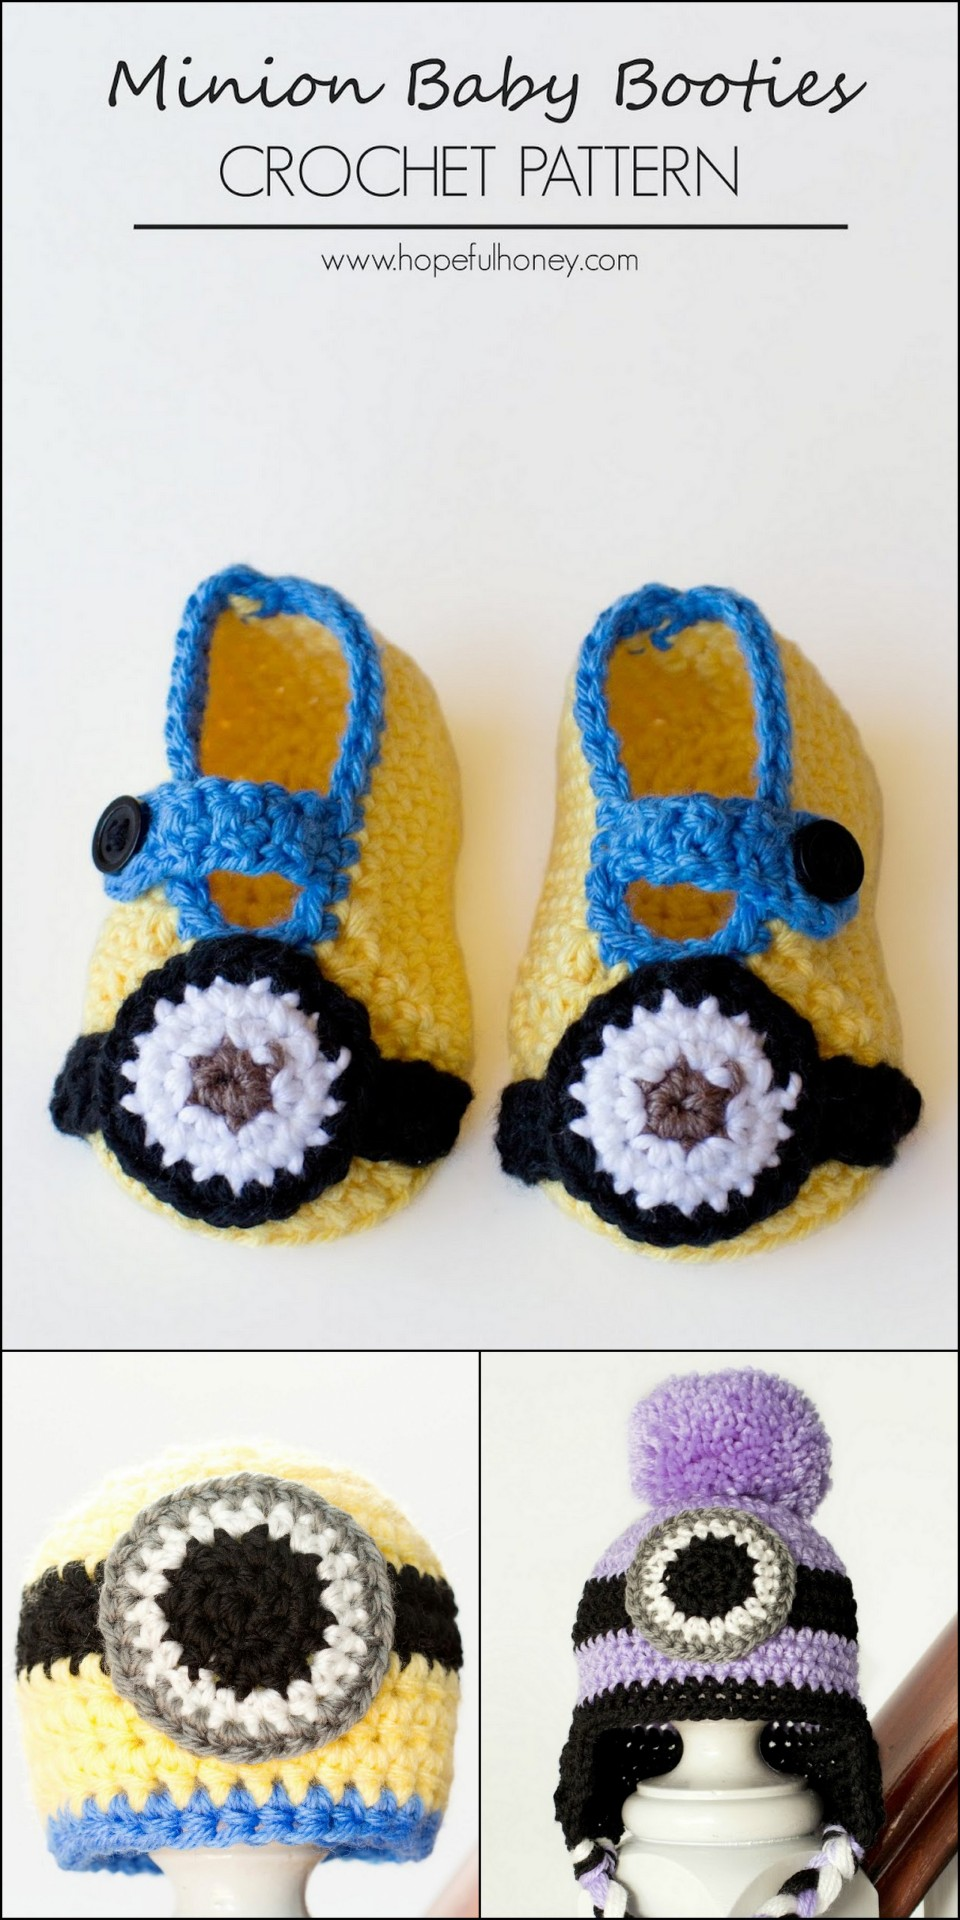 True blue me you diys for creatives diy crochet minion diy crochet minion newborn and baby booties and hats from hopeful honey crochet baby bankloansurffo Image collections